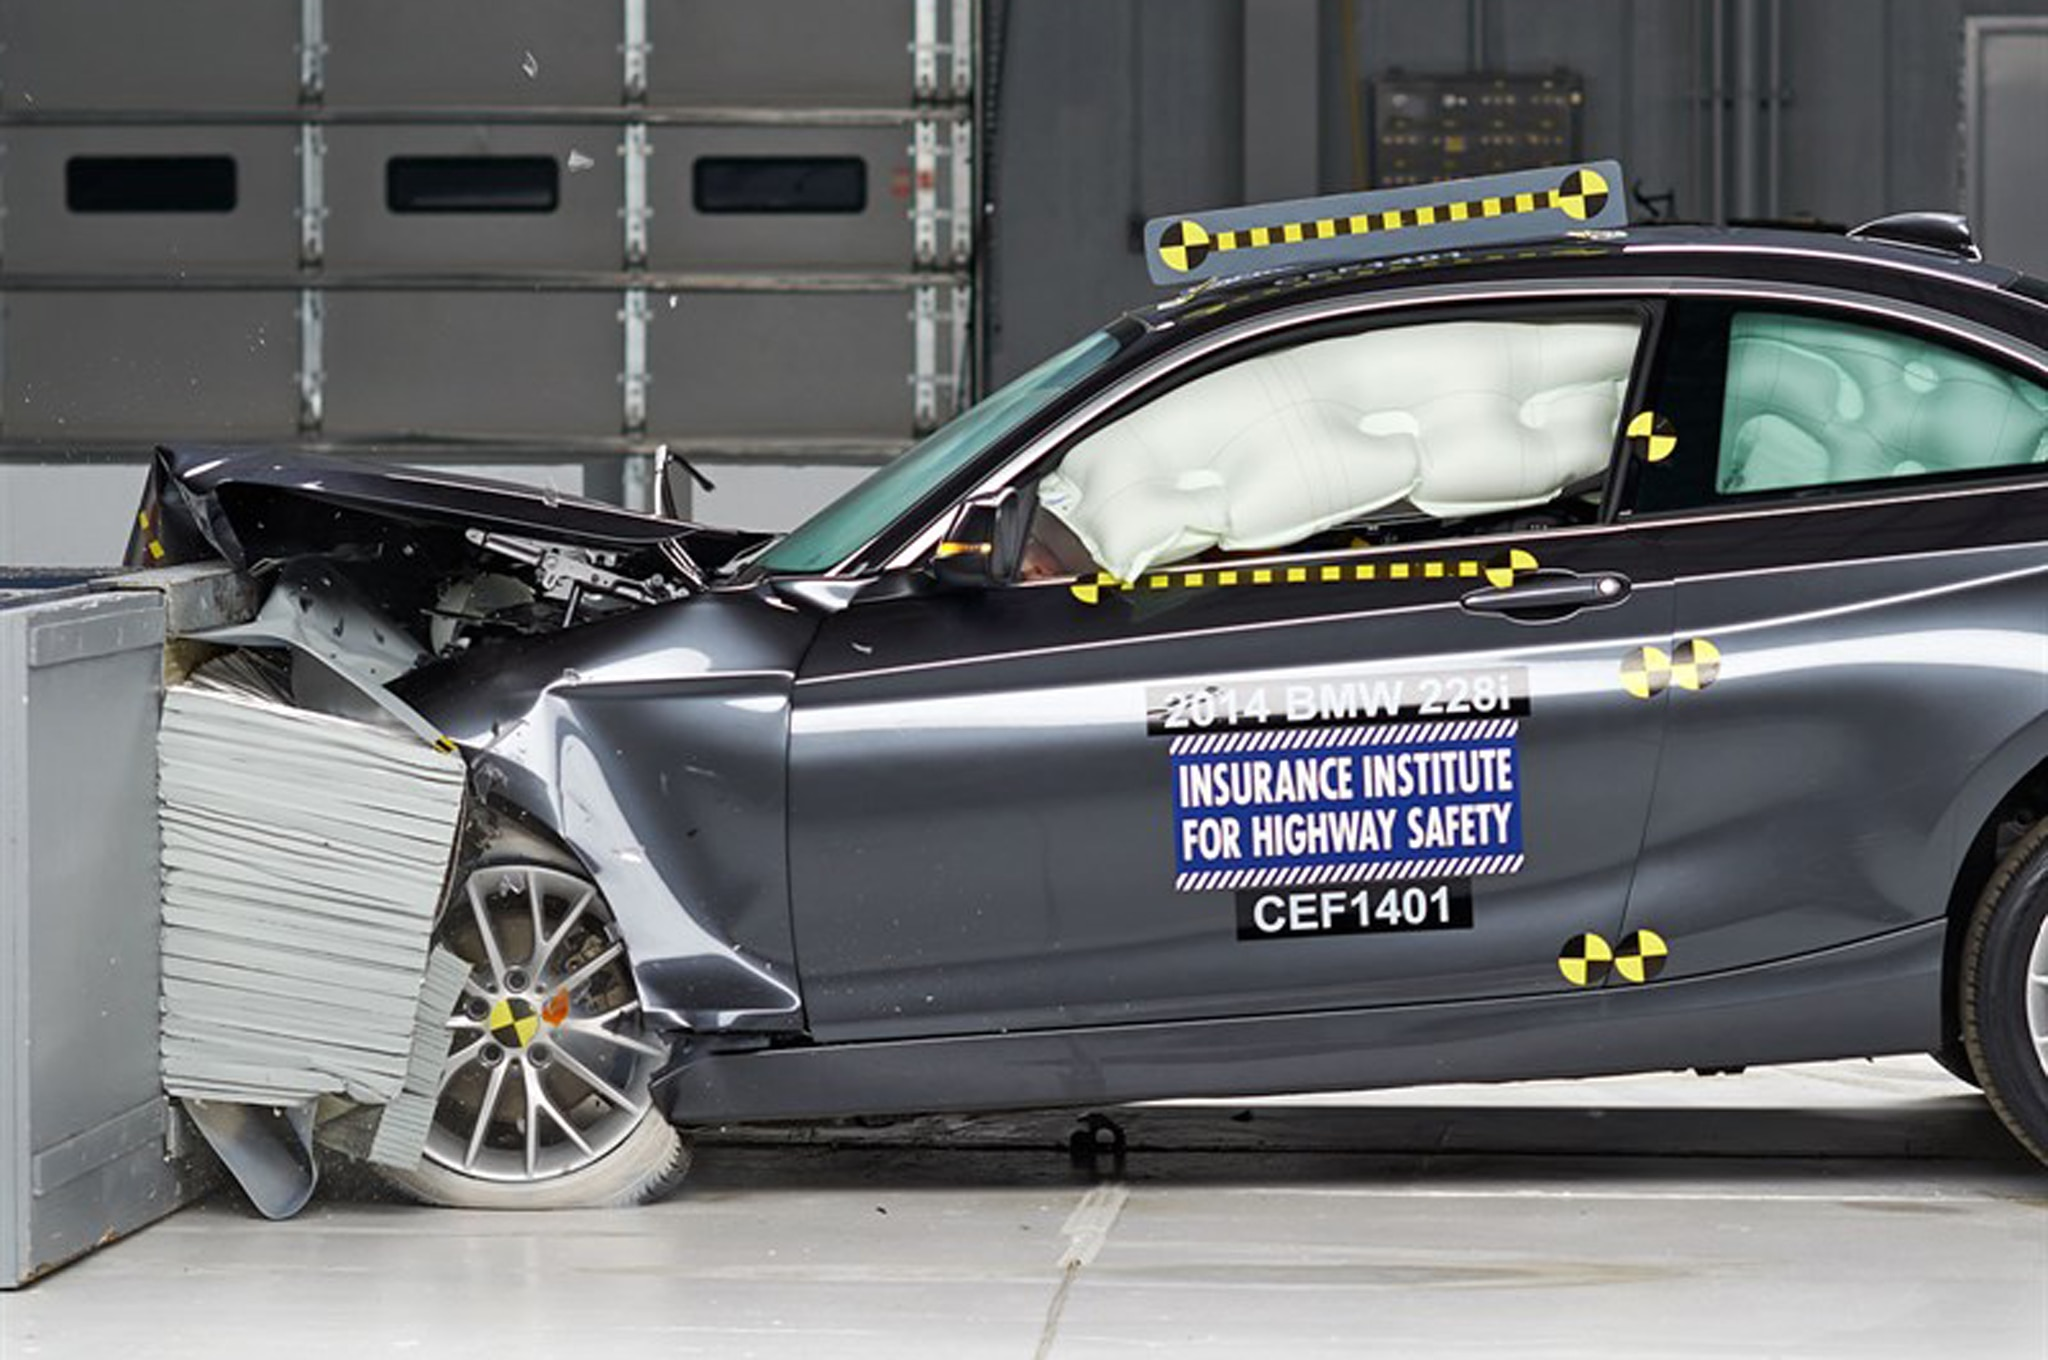 2014 Bmw 2 Series Iihs Moderate Overlap1